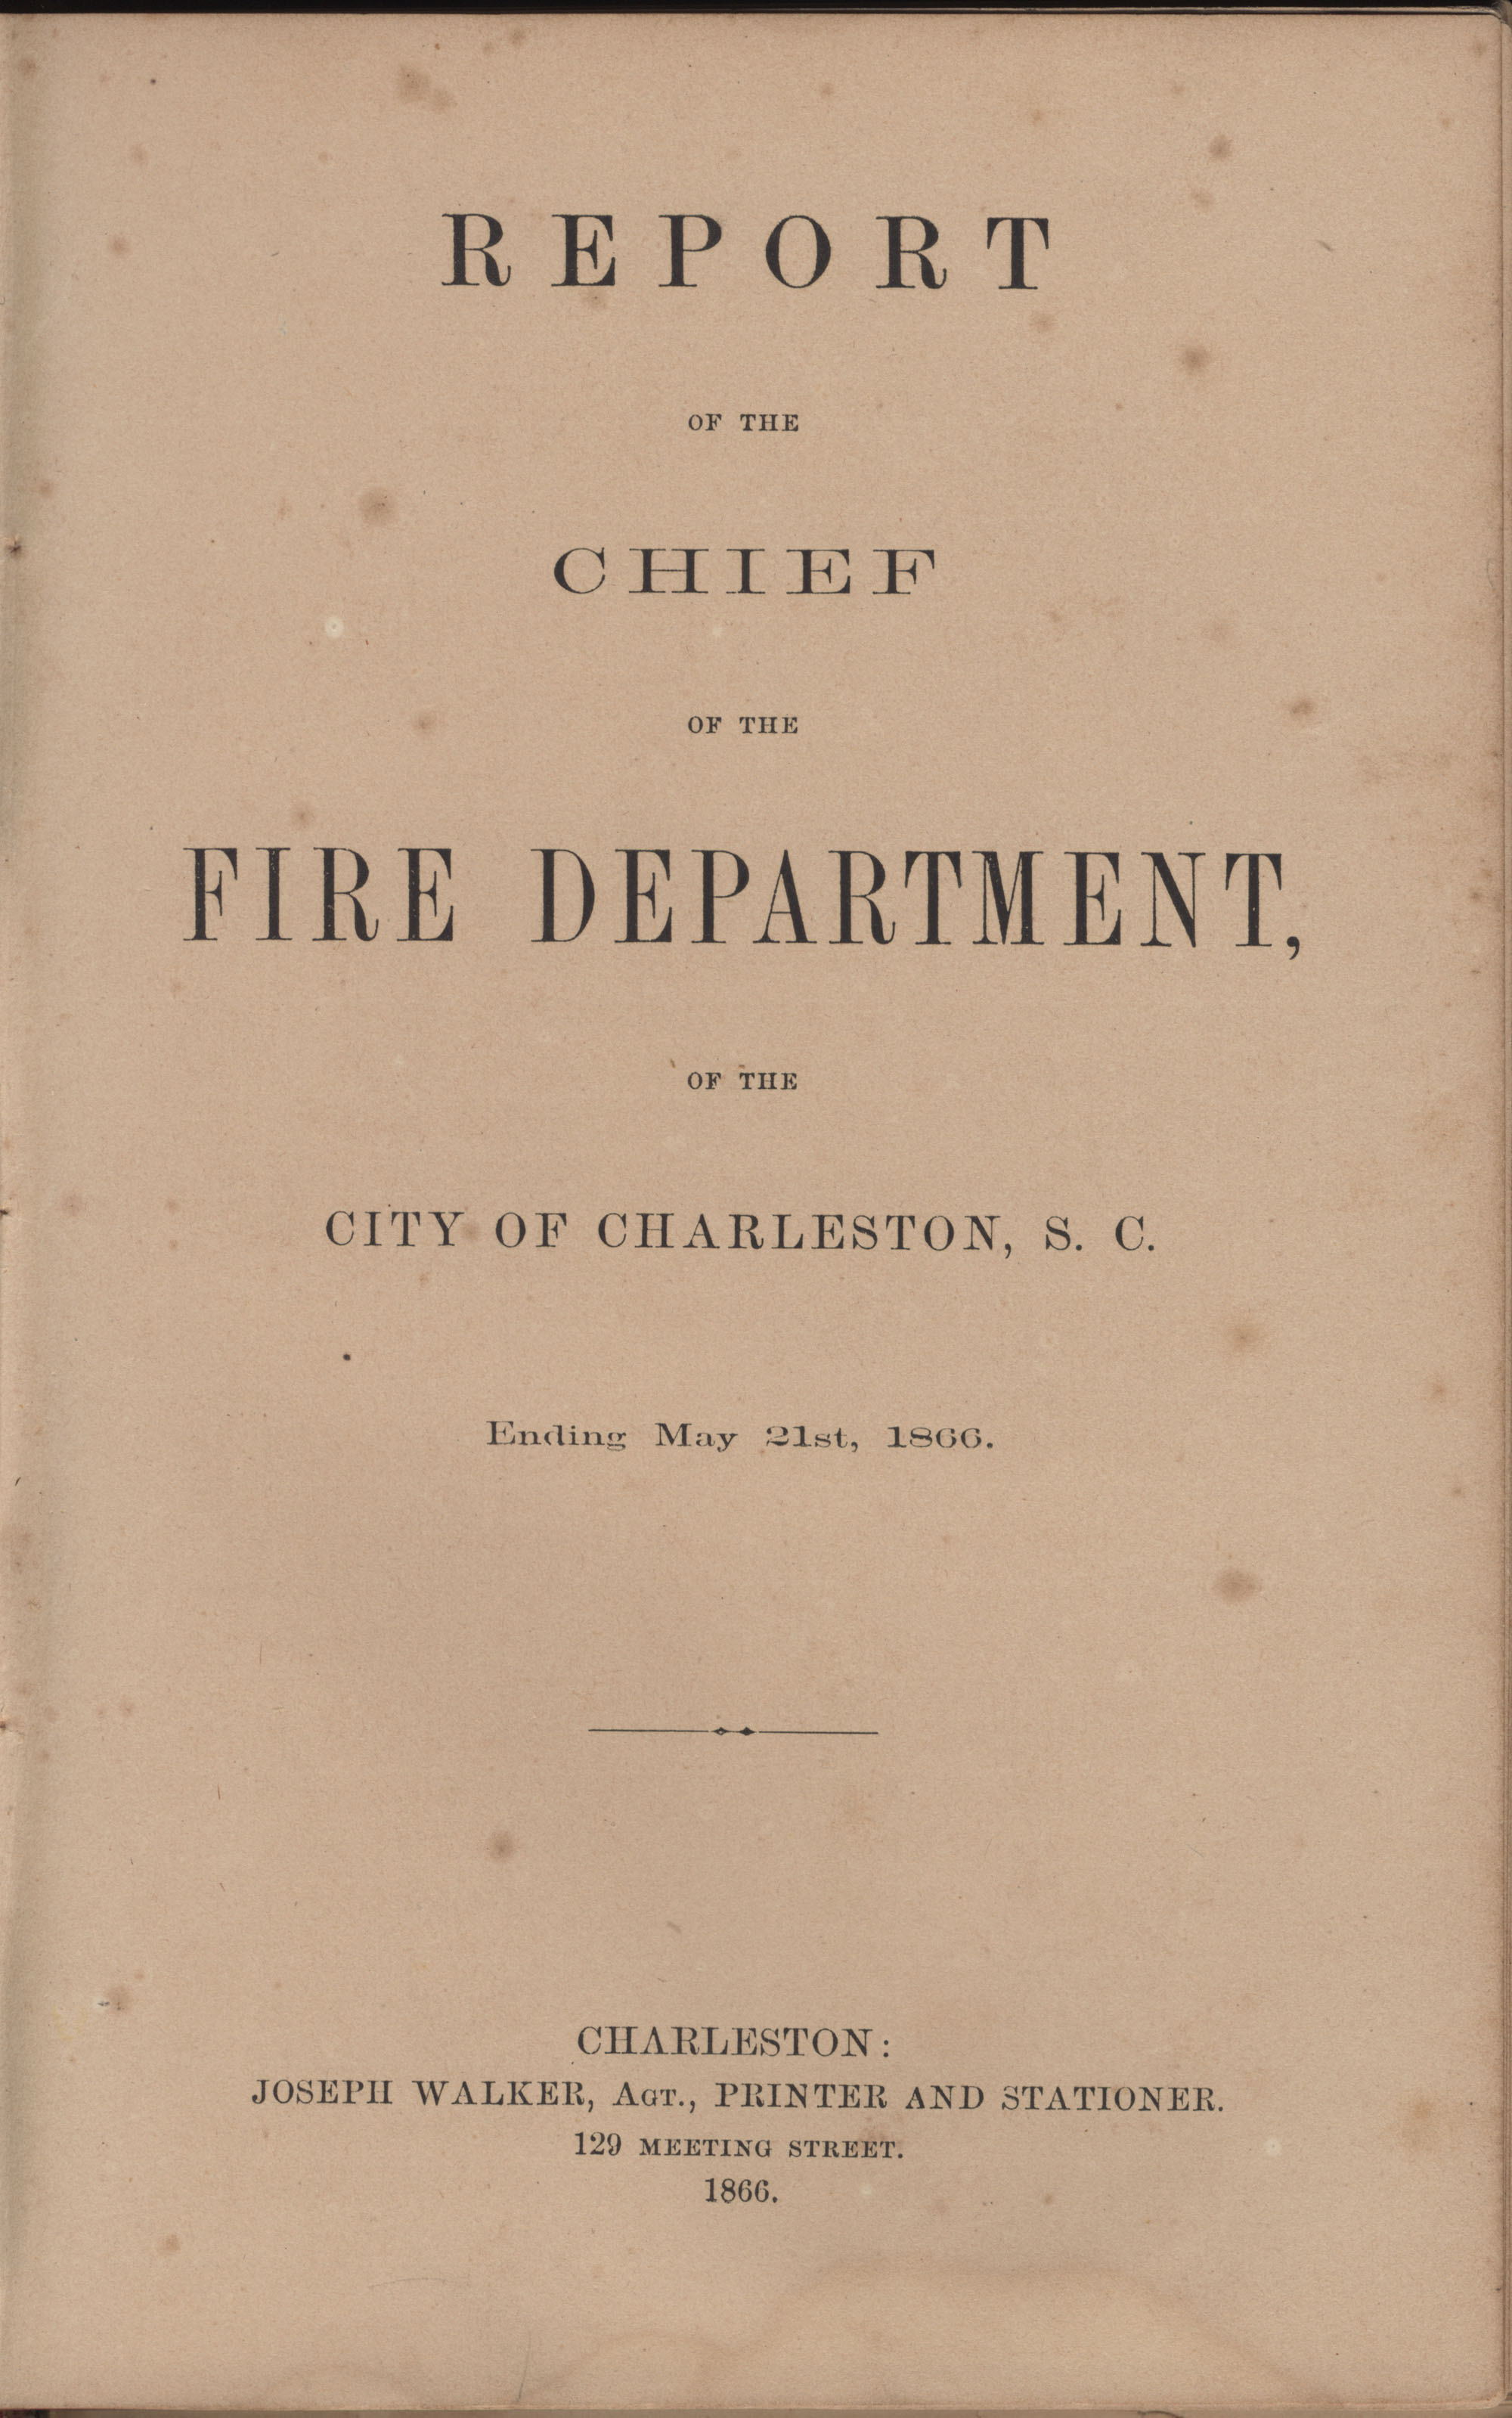 Annual Report of the Chief of the Fire Department of the City of Charleston, page 99